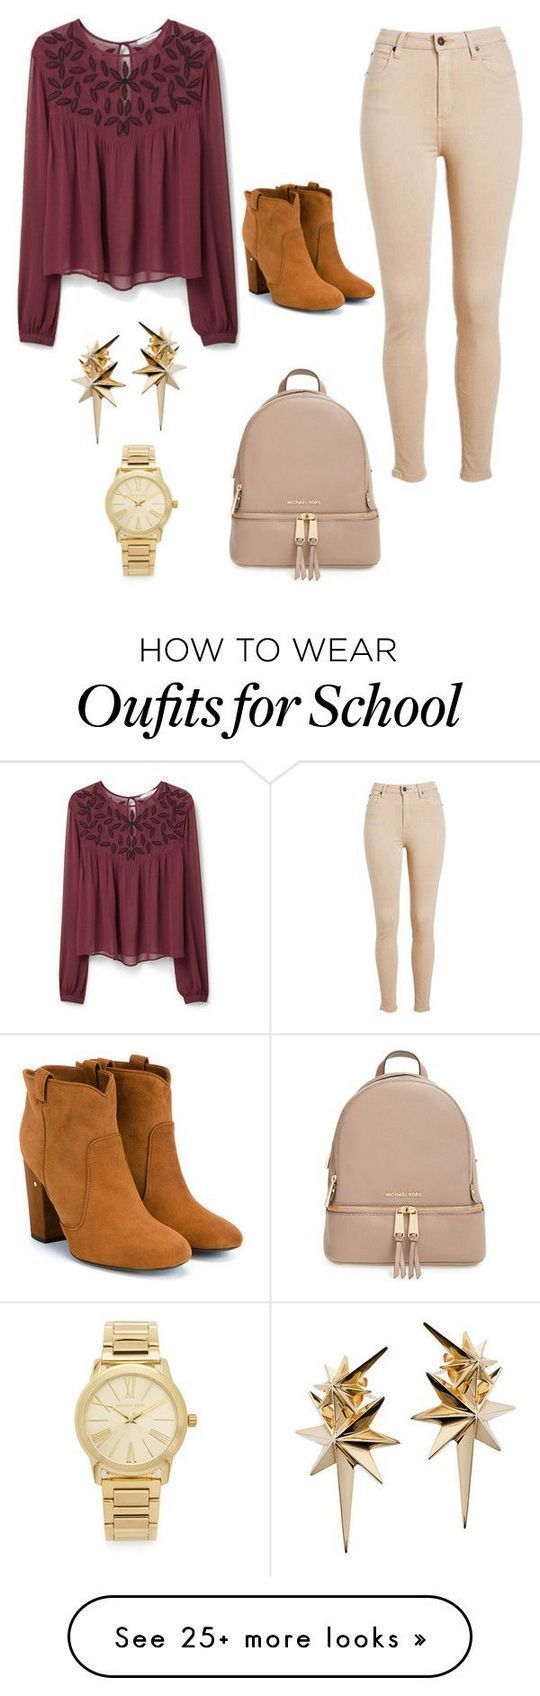 17 essential things for school outfits high school freshman casual jeans 31 – # outfits #teenager # girl # school # school # spring # 2019 # casuales # …